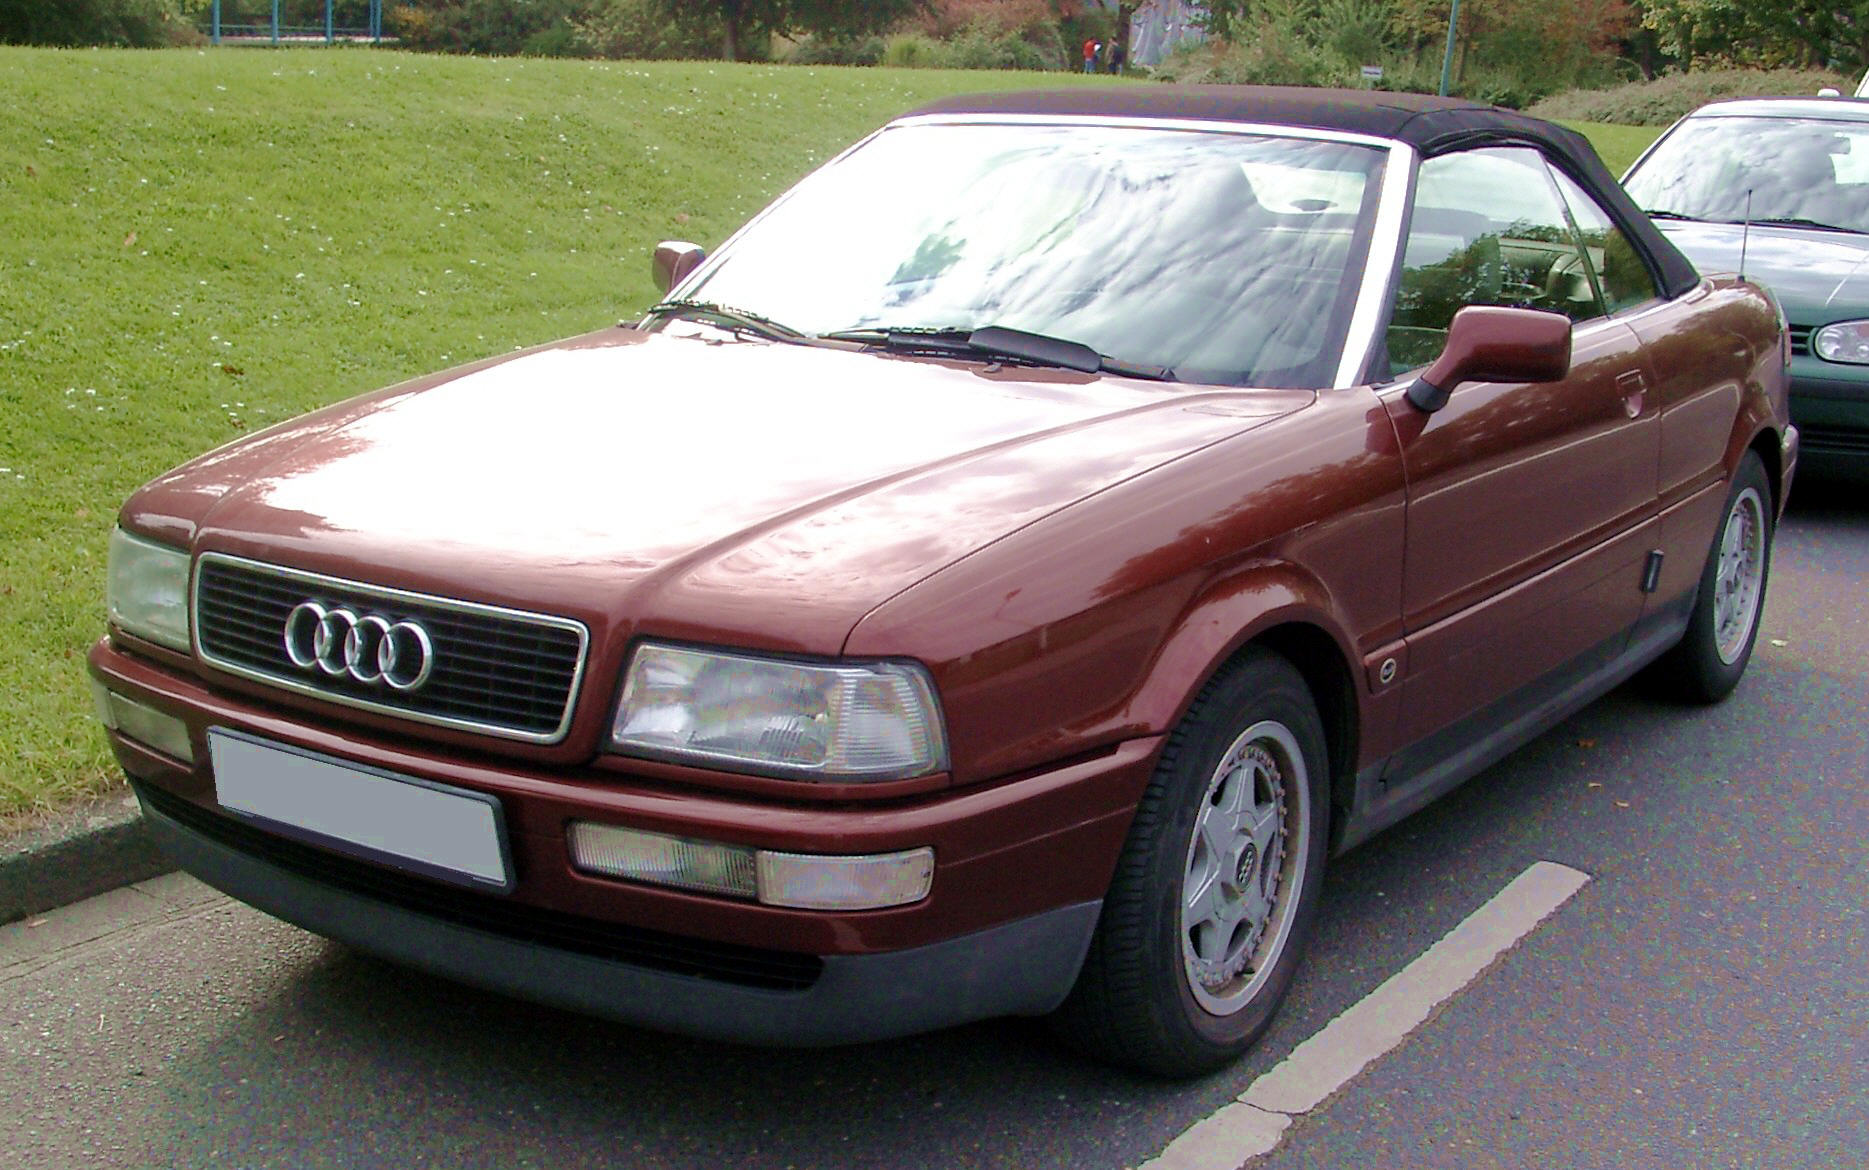 audi 80 cabrio technical details history photos on. Black Bedroom Furniture Sets. Home Design Ideas